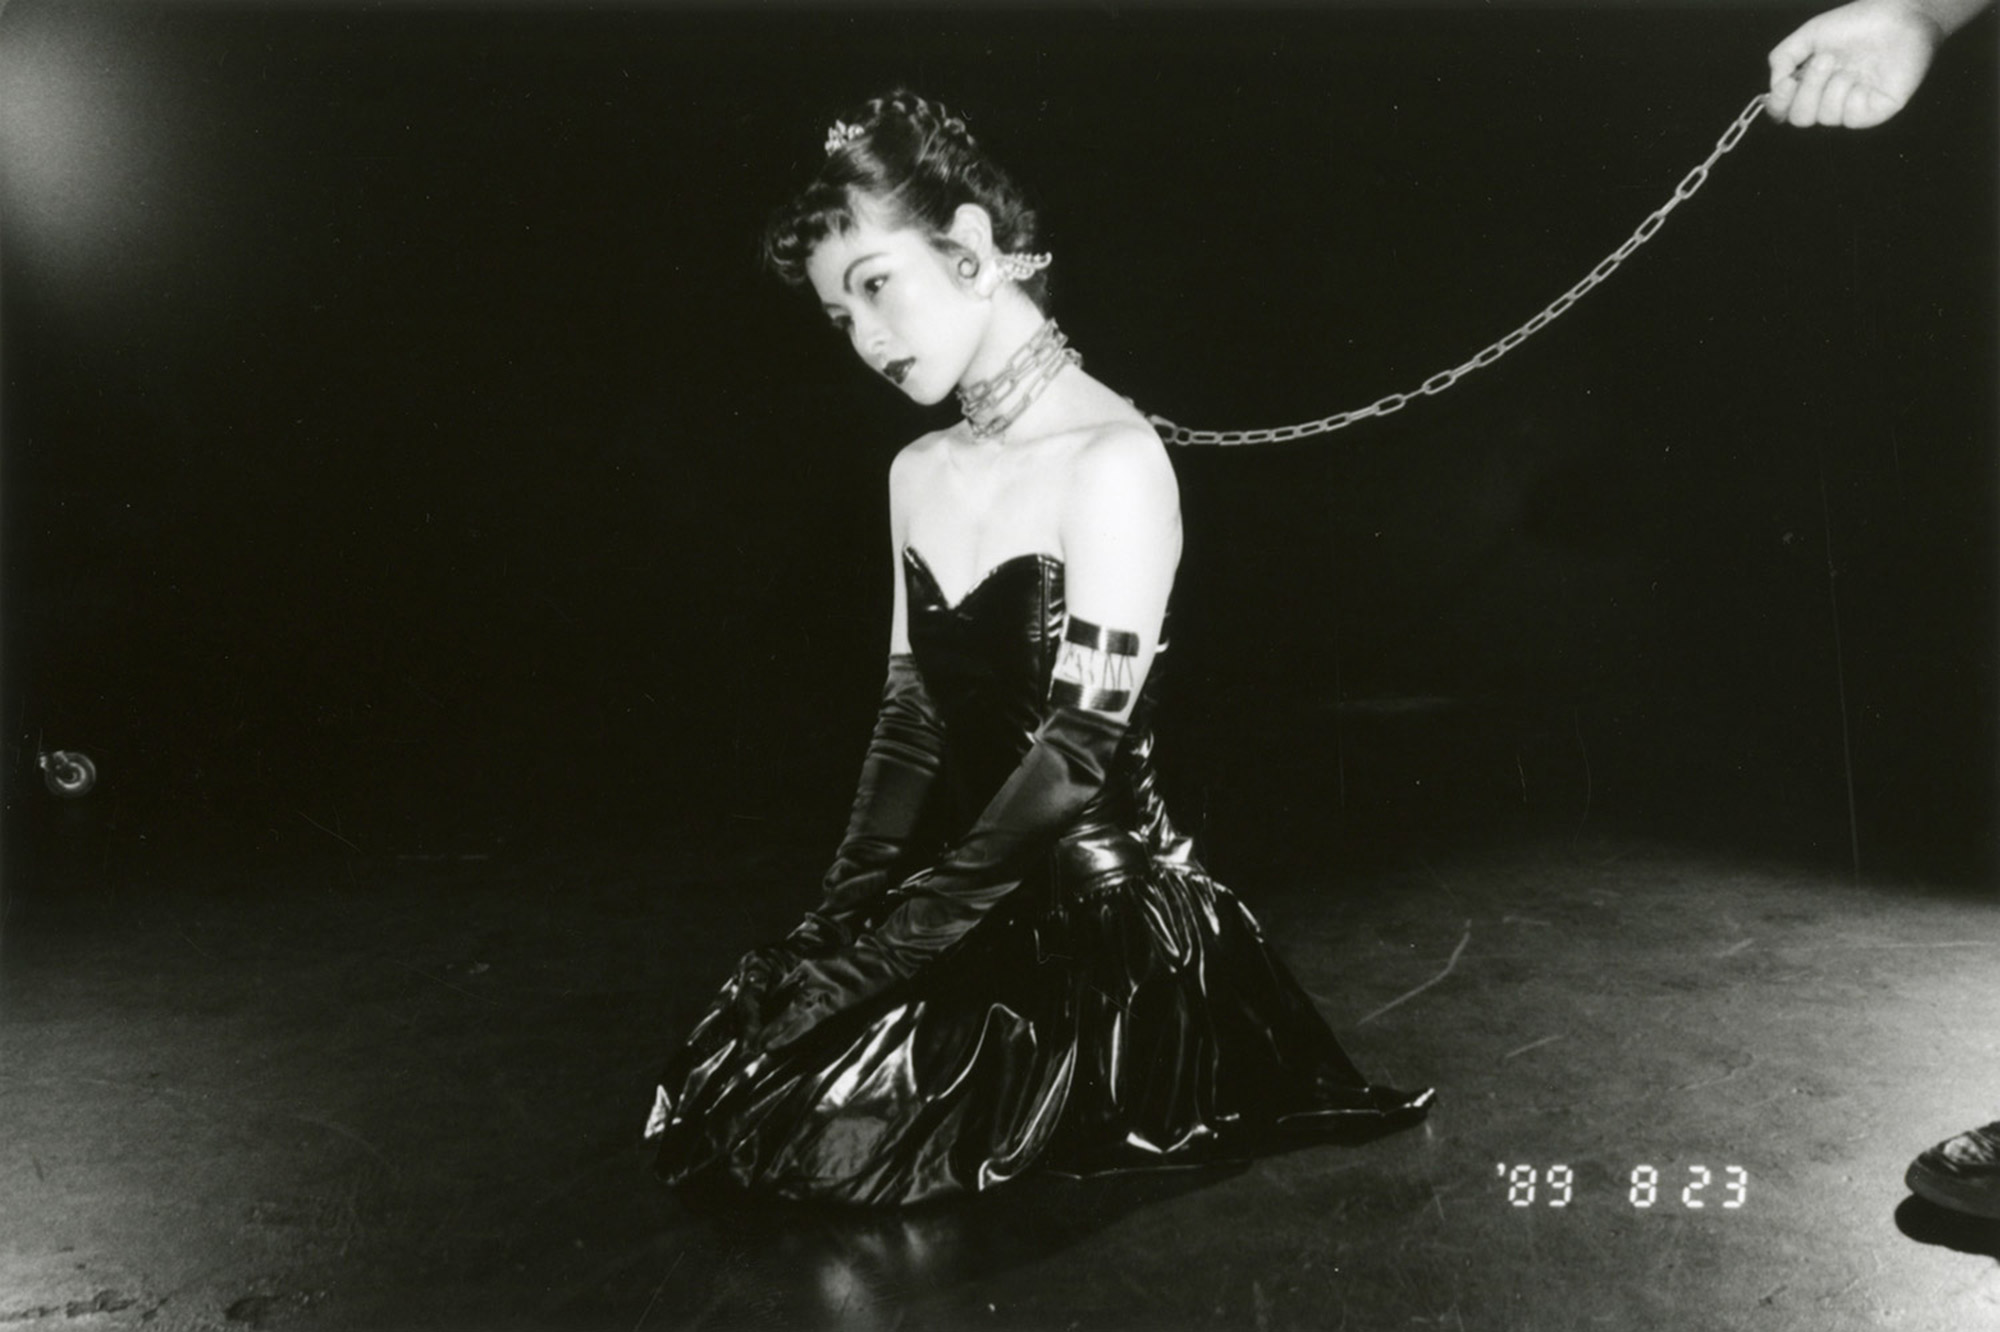 The Provocative Bondage Photography of Nobuyoshi Araki